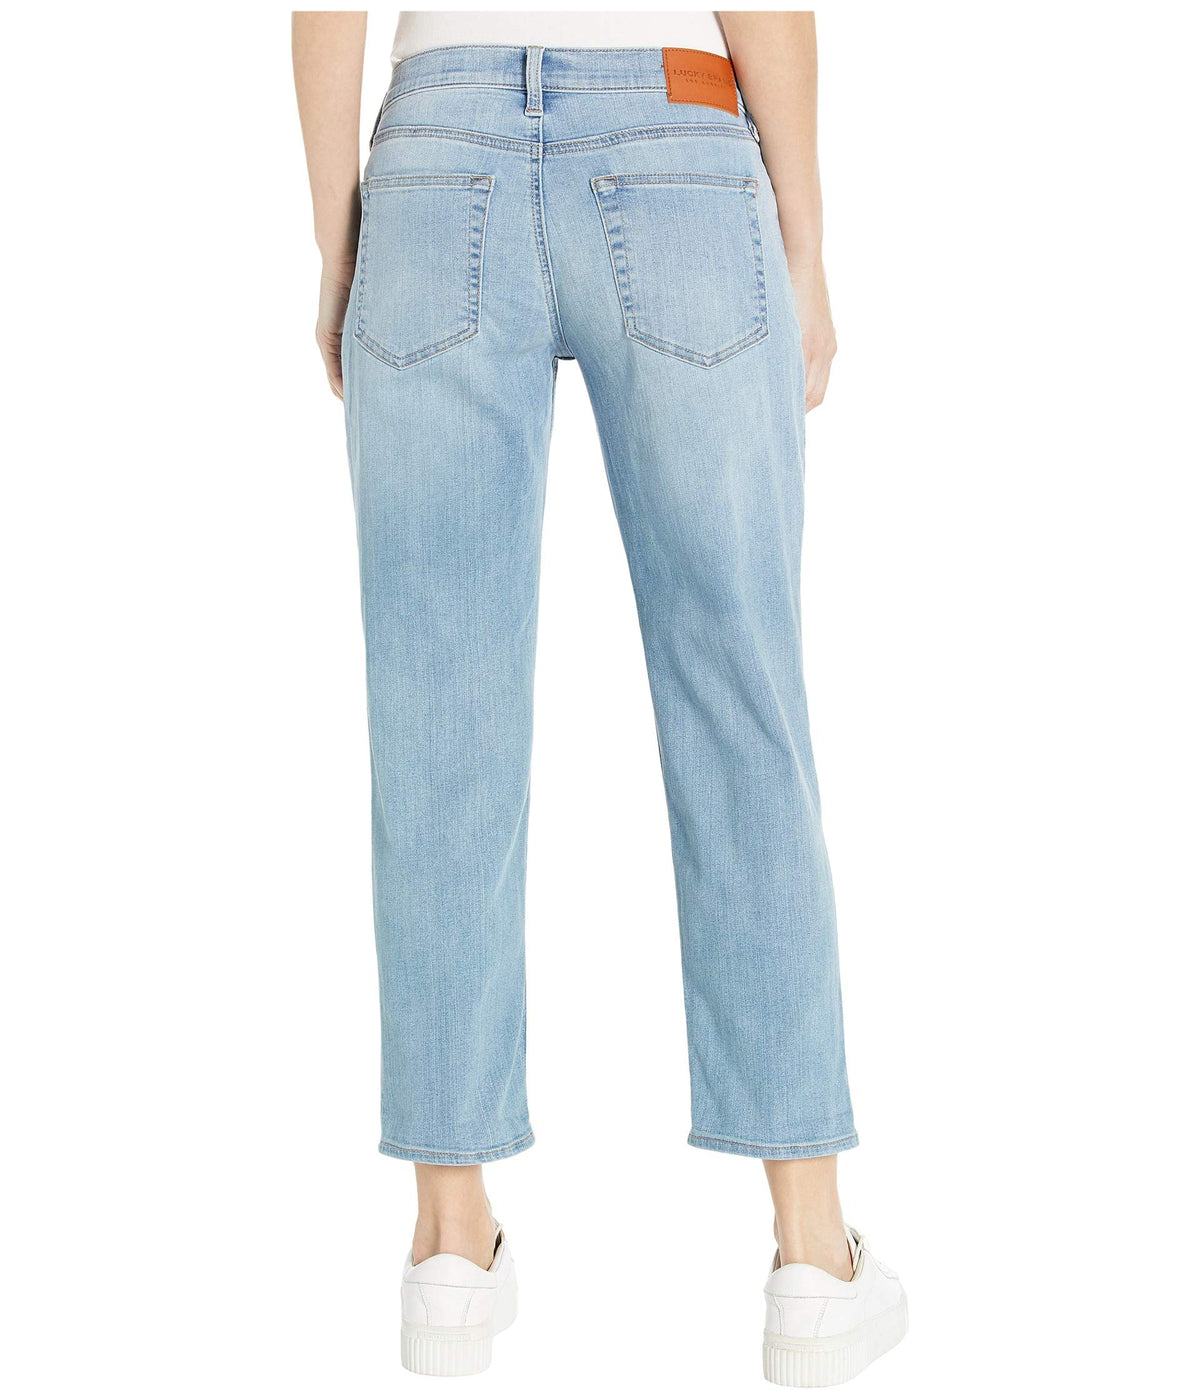 Mid-Rise Sienna Slim Boyfriend Jeans in Sentimental Destruct